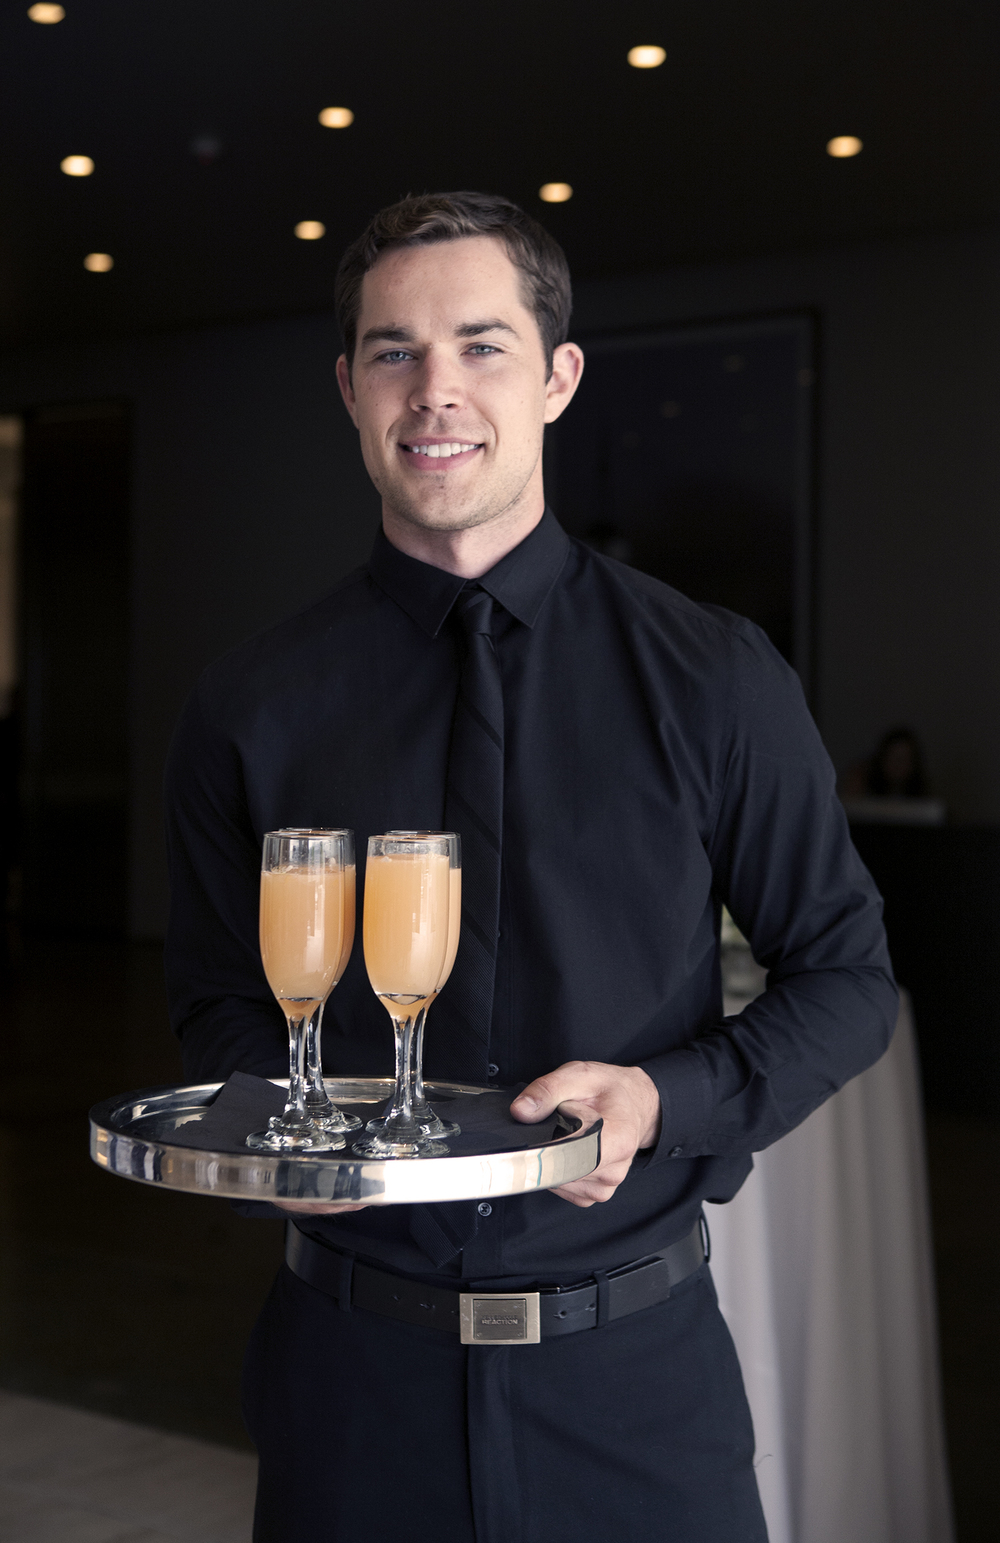 Paul cocktail serve.jpg